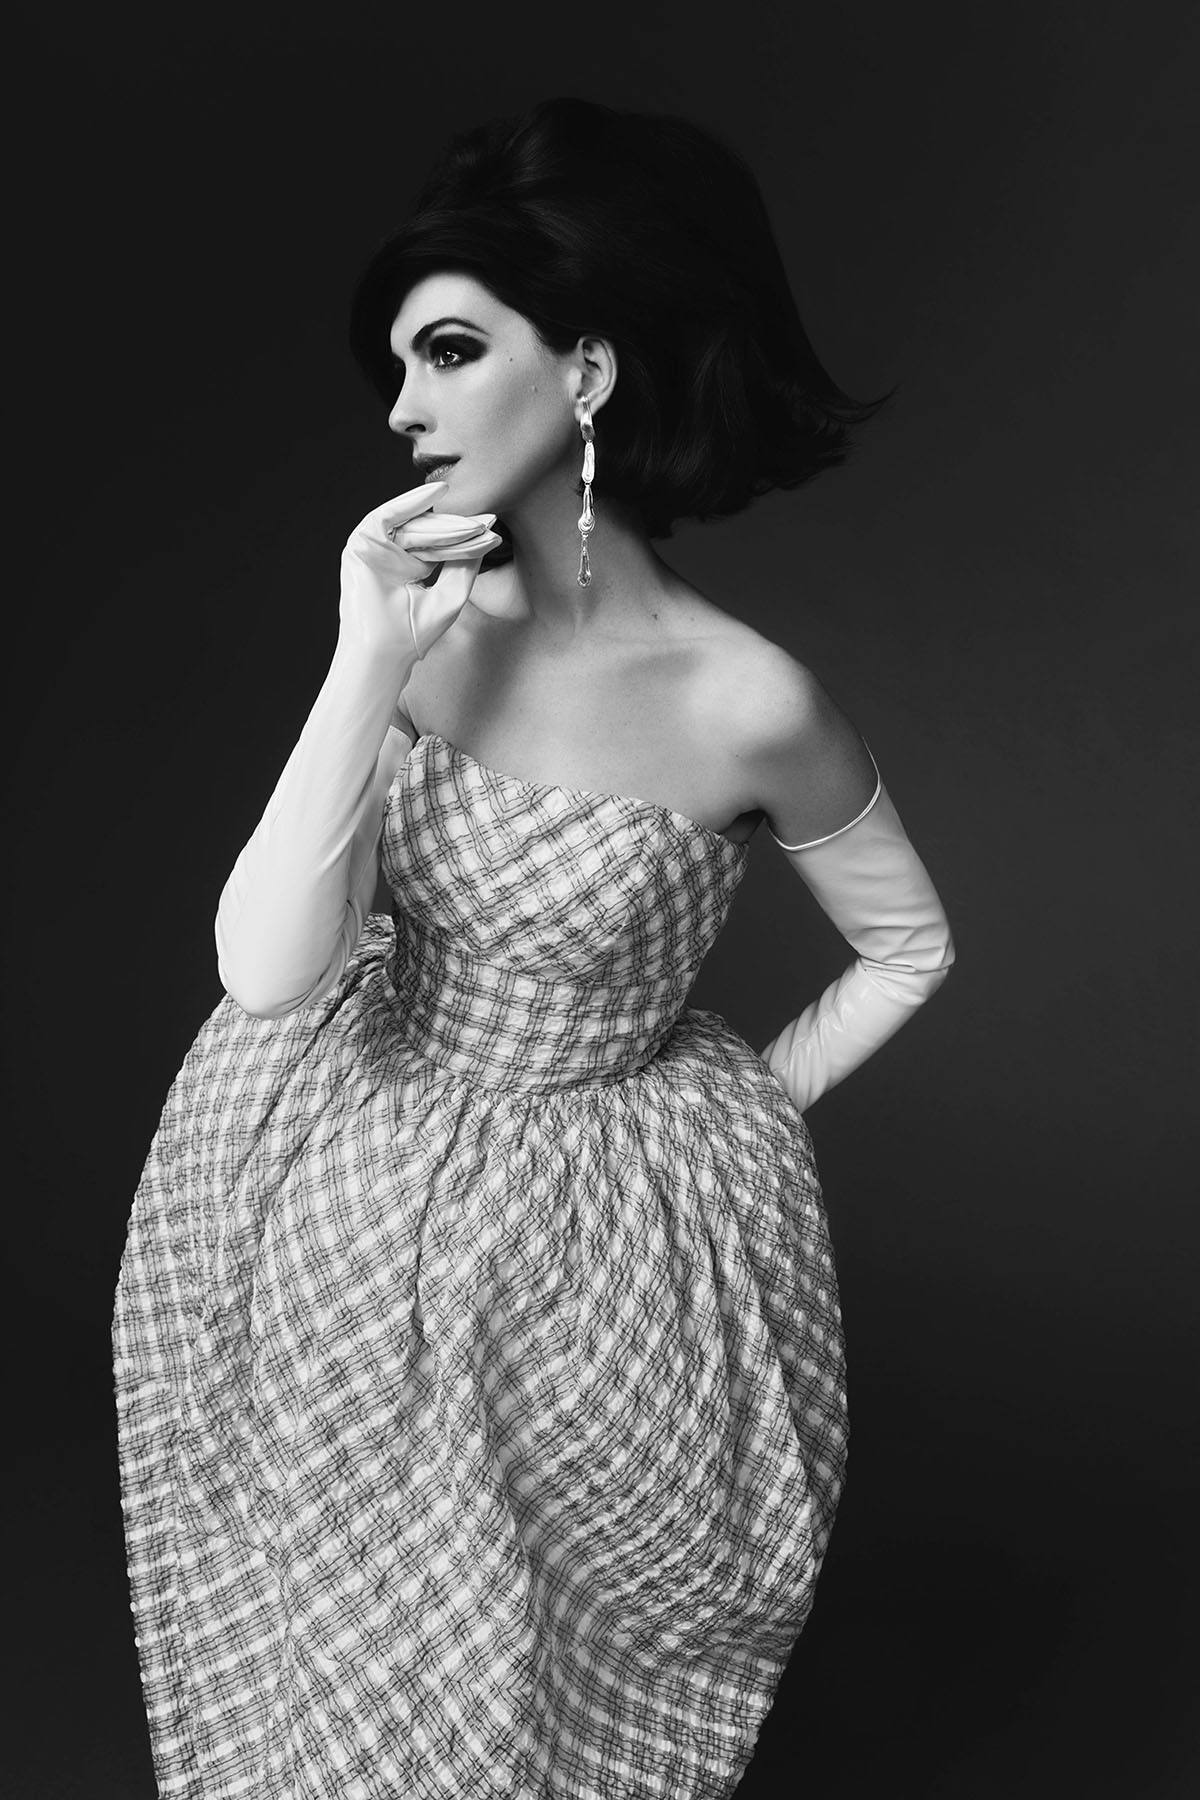 Anne Hathaway covers CR Fashion Book China Issue 02 by AB+DM